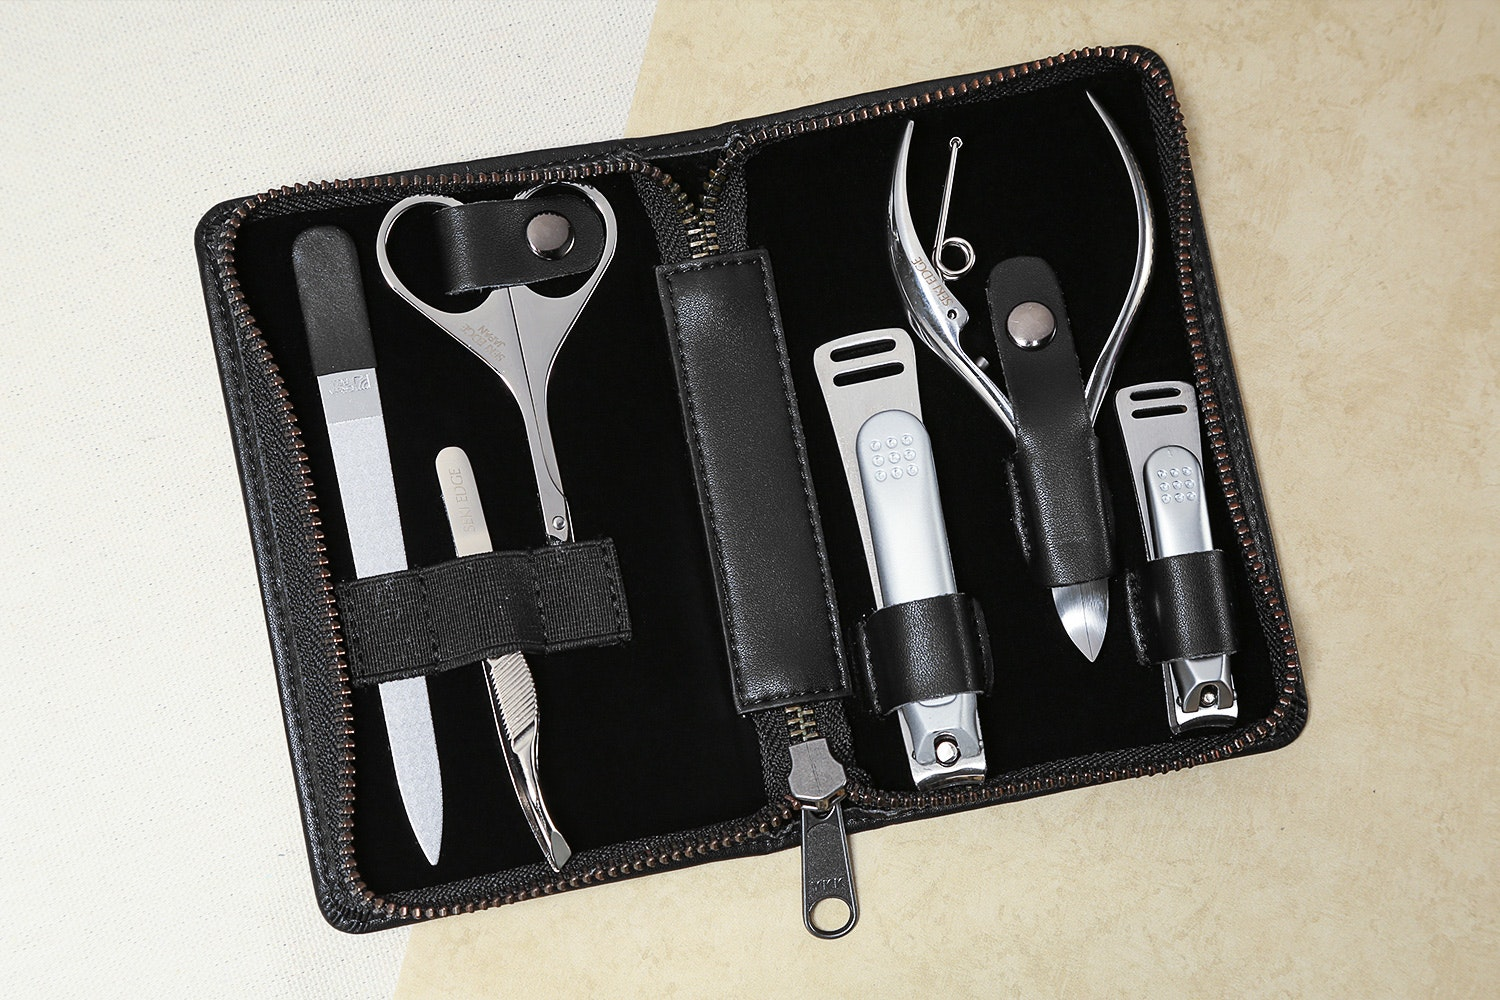 Seki Edge Grooming Kit